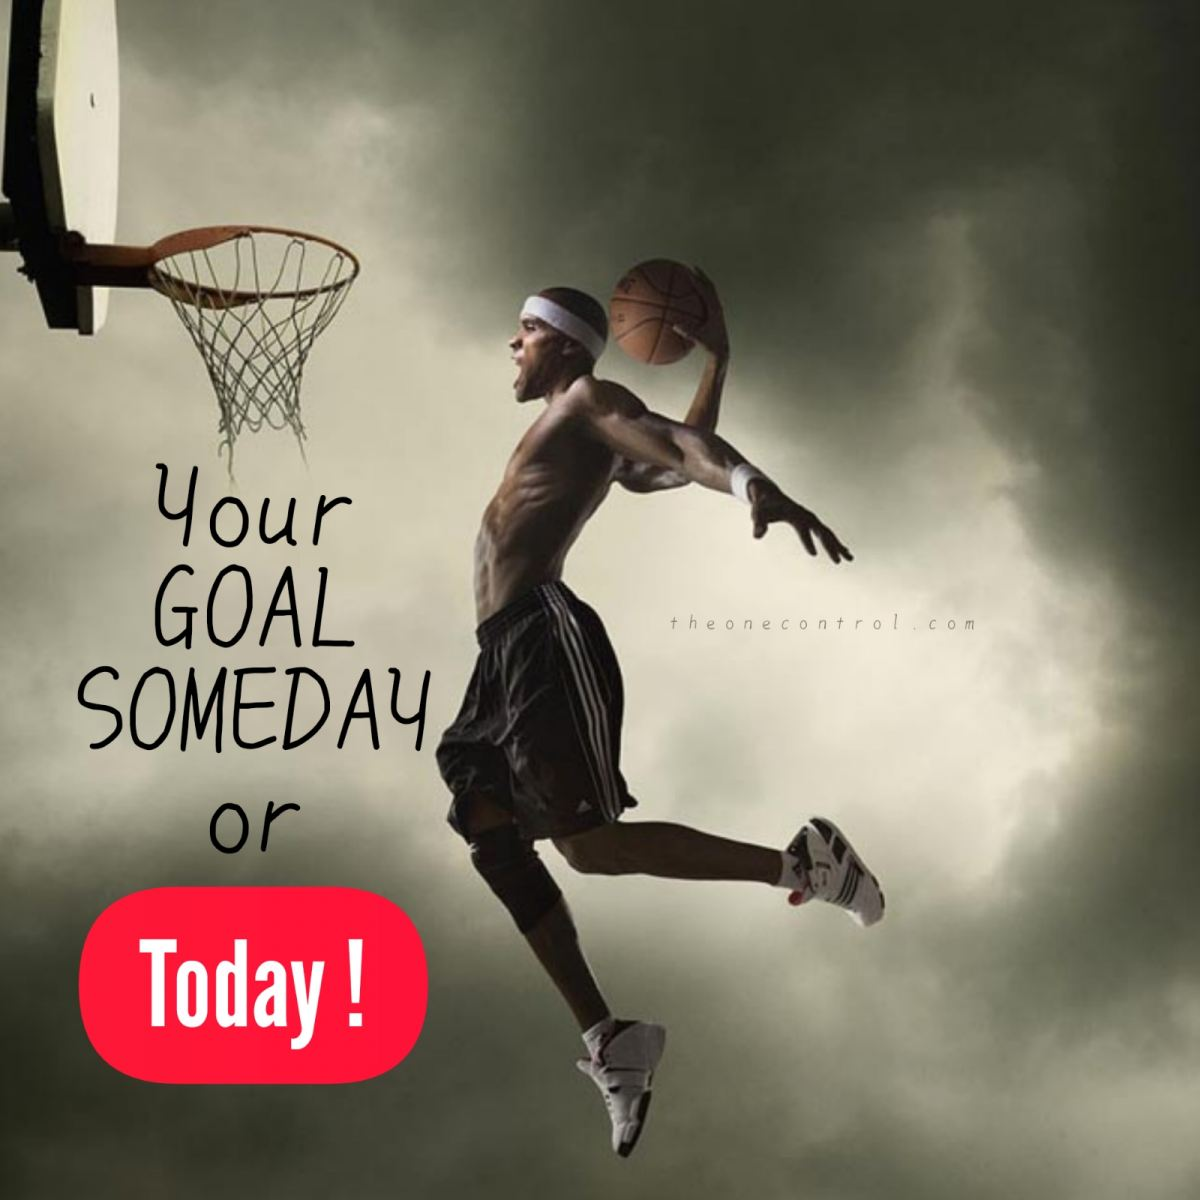 Someday or Today